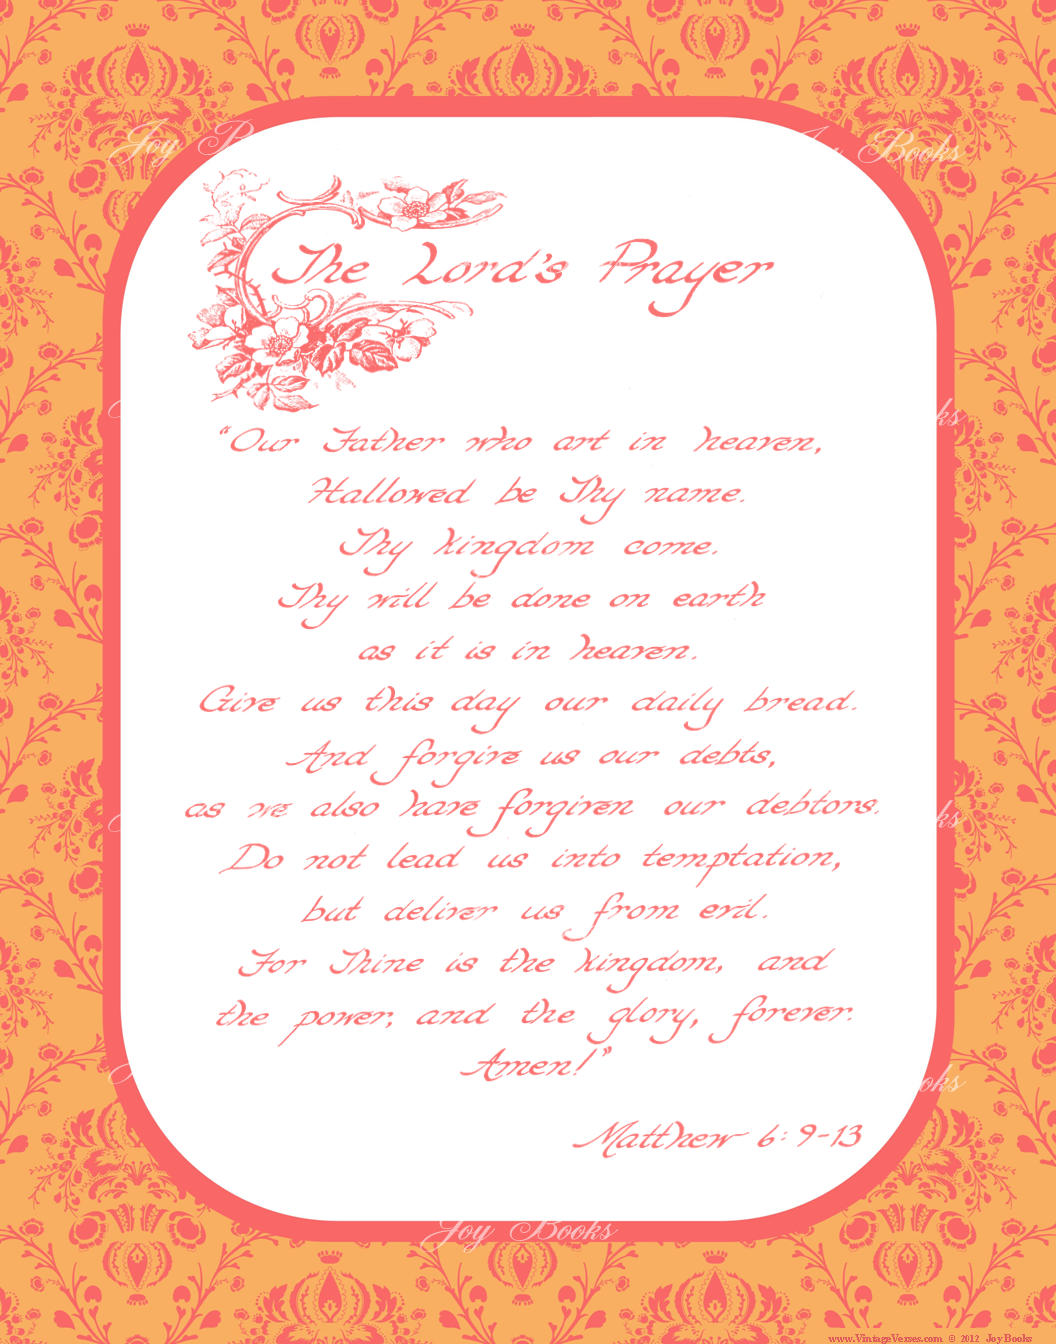 Matthew 6:9-13 The Lord's Prayer - Christian Home and Office Decor, Vintage Verses, Hand Written Calligraphy, Bible Verse Wall Art, Inspirational Quote Art, Tangerine Orange and Coral Pink, 11x14 art print ready to frame